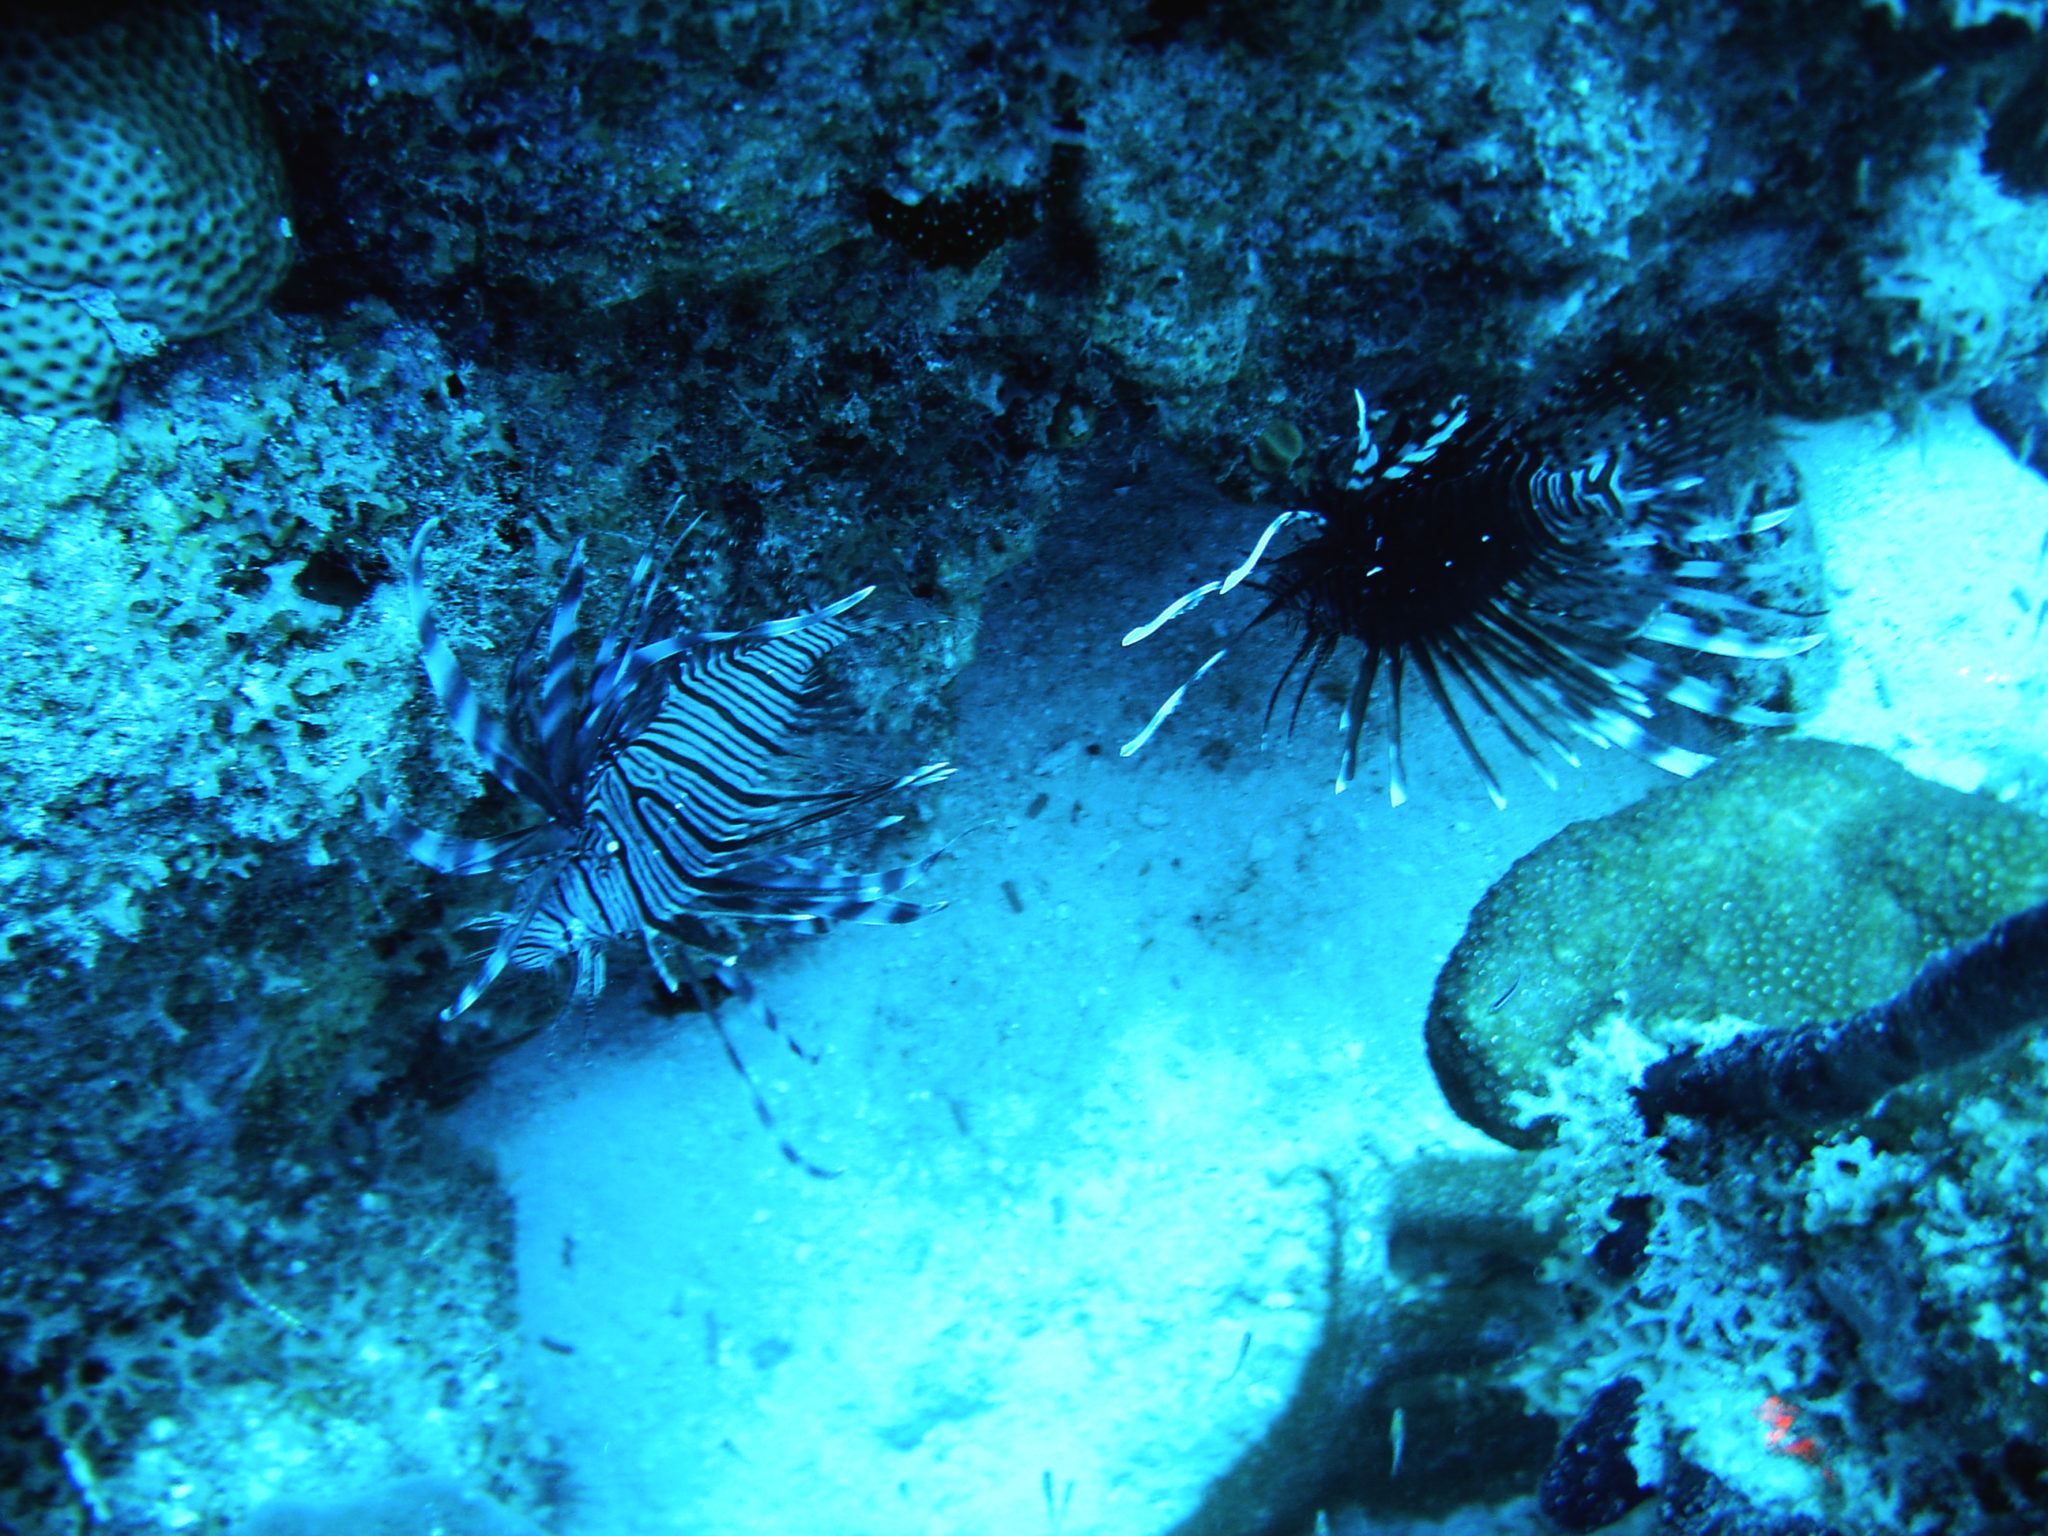 Republique_dominicaine_roadtrip_bayahibe_plongee_scubafun_rascasse_dominicus_reef